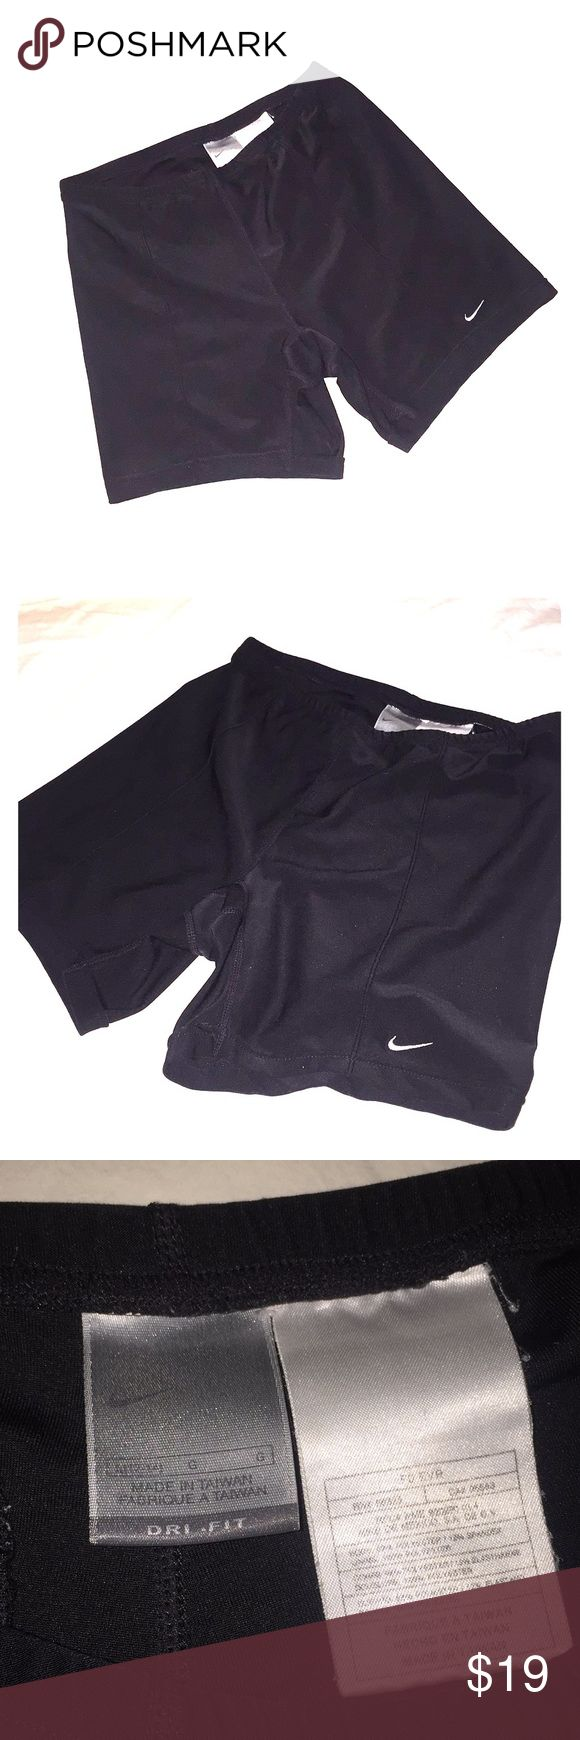 ⚠️Nike compression shorts*•DONATING SOON•* Like new, no damage, has a back pocket, could work for females too... very nice. 🙂 *•LAST CHANCE! DONATING SOON! I'm moving x country!! Everything must go!!•* Nike Shorts